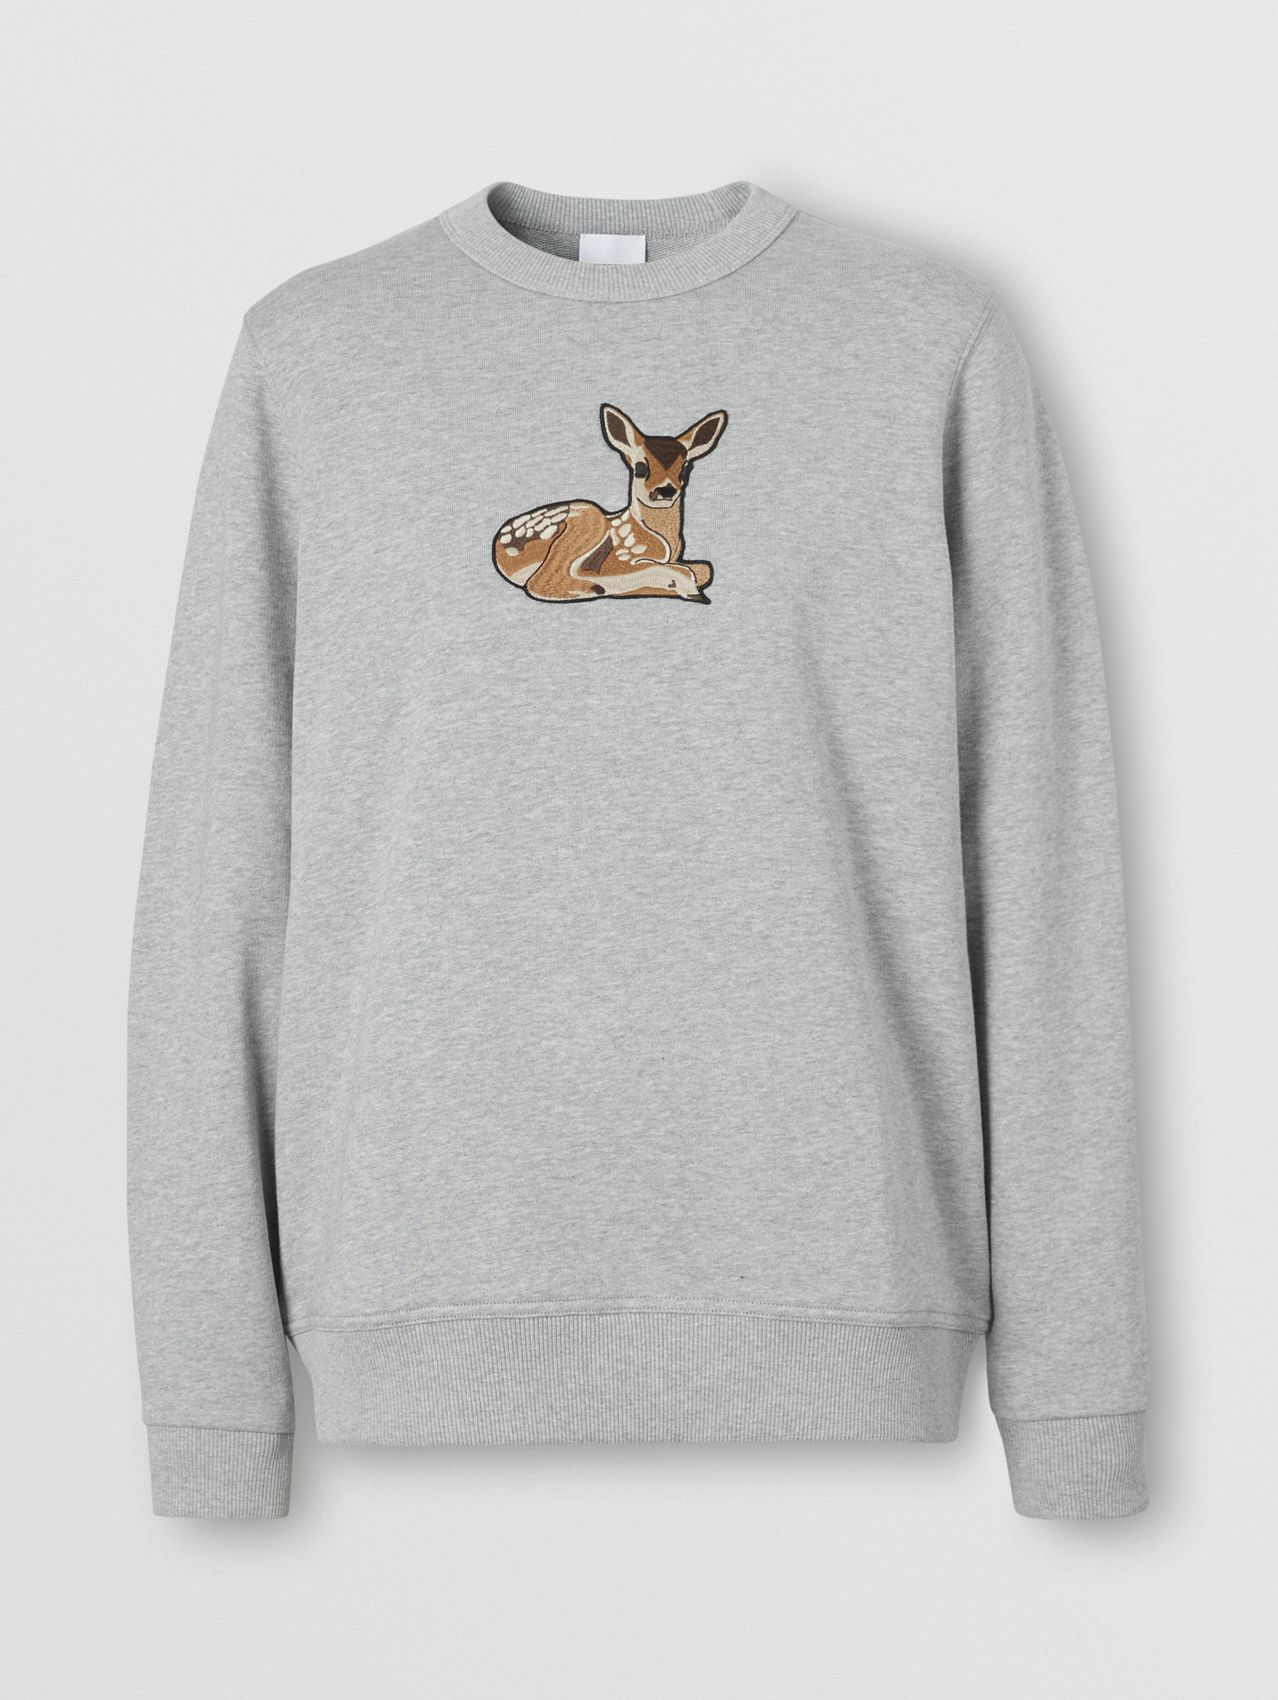 Deer Motif Cotton Oversized Sweatshirt (Pale Grey Melange)